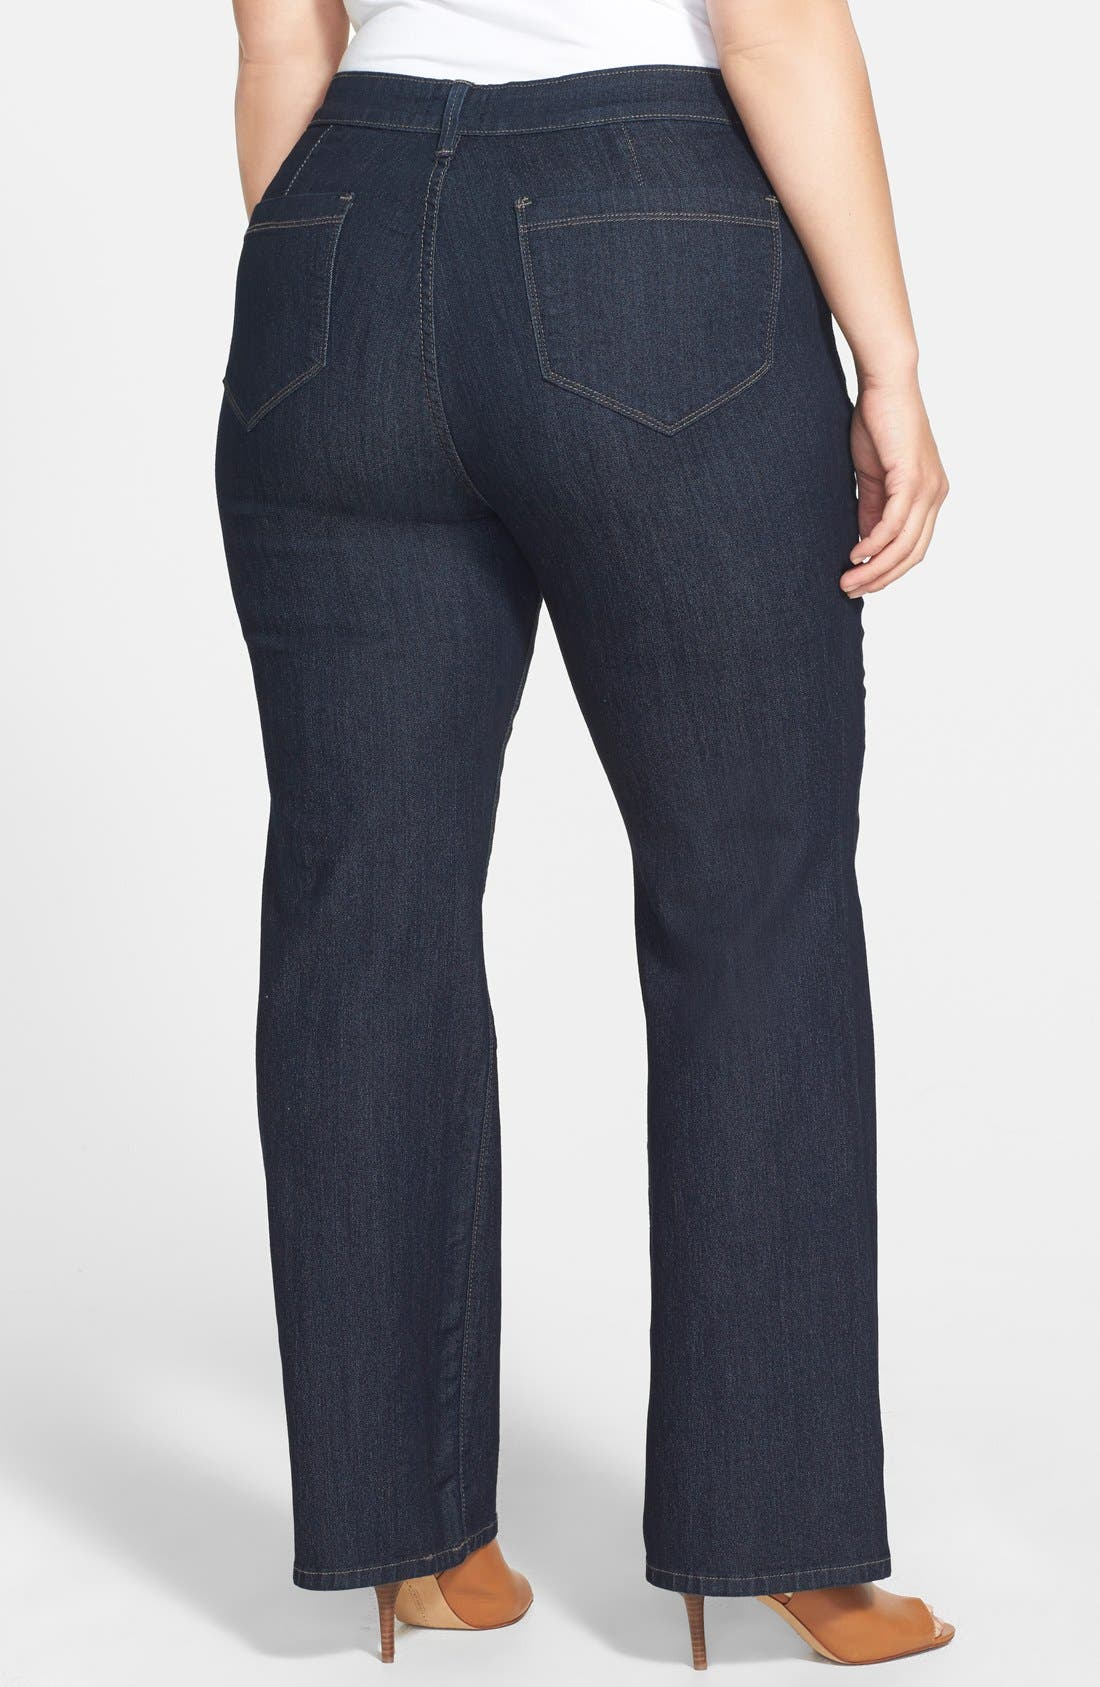 'Isabella' High Rise Stretch Trouser Jeans,                             Alternate thumbnail 2, color,                             DARK ENZYME